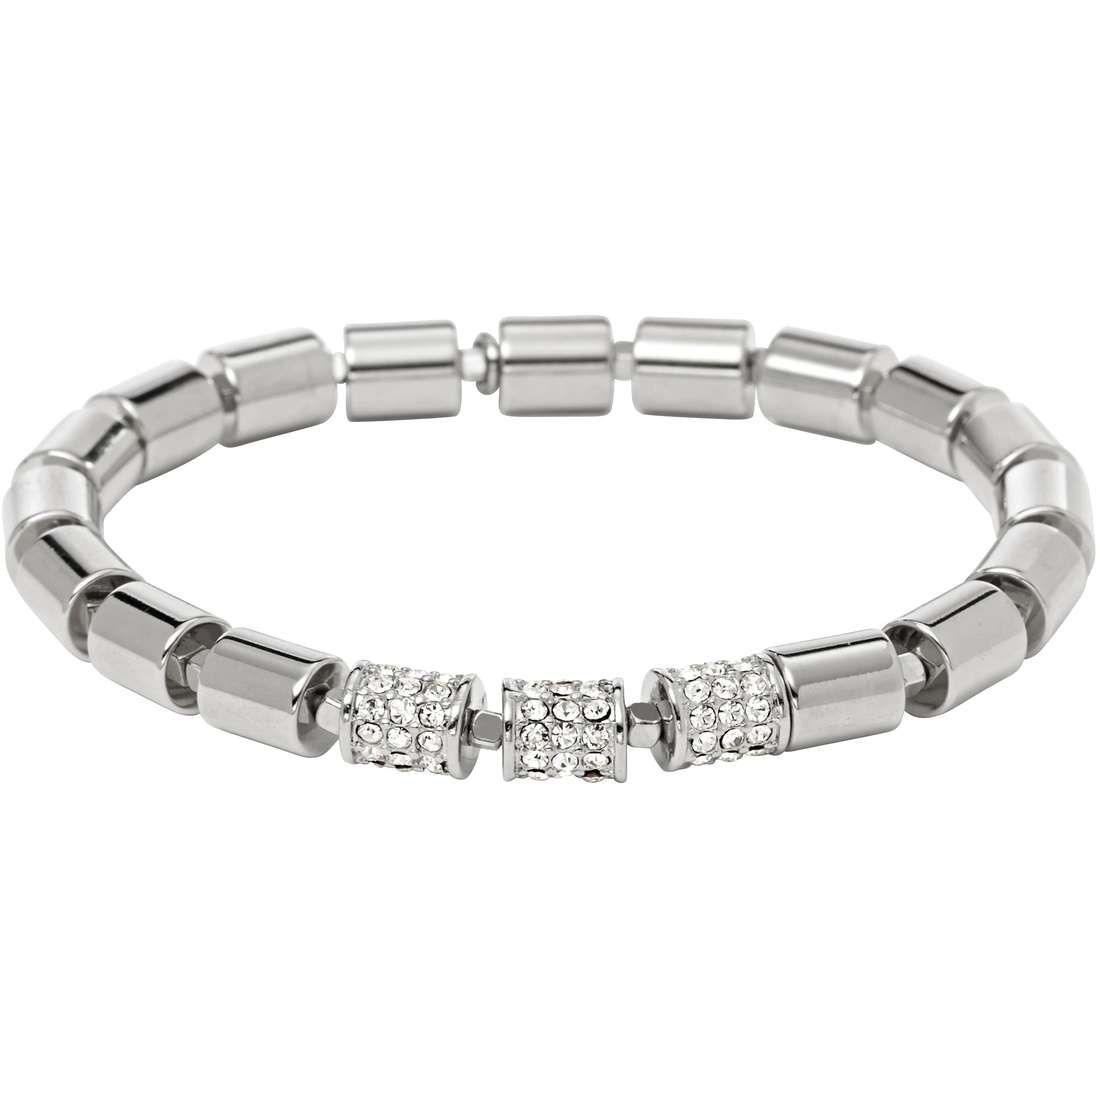 bracelet woman jewellery Fossil Fall 14 JA6543040